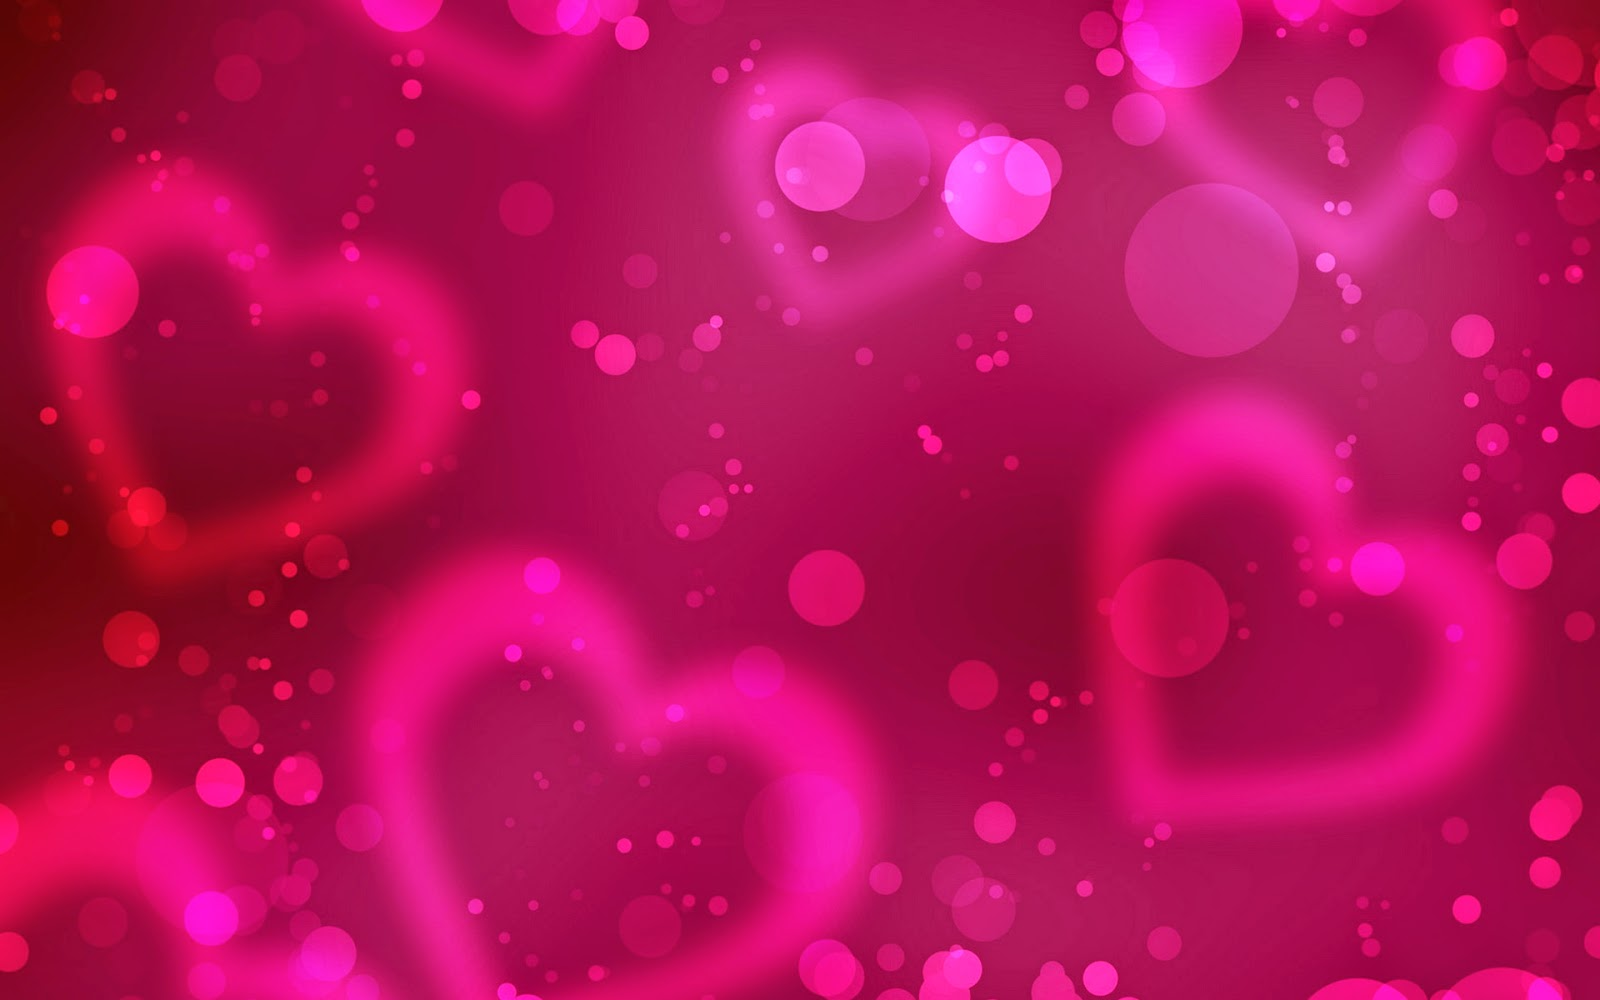 Romantic Love Heart Designs HD cover Wallpaper PIXHOME